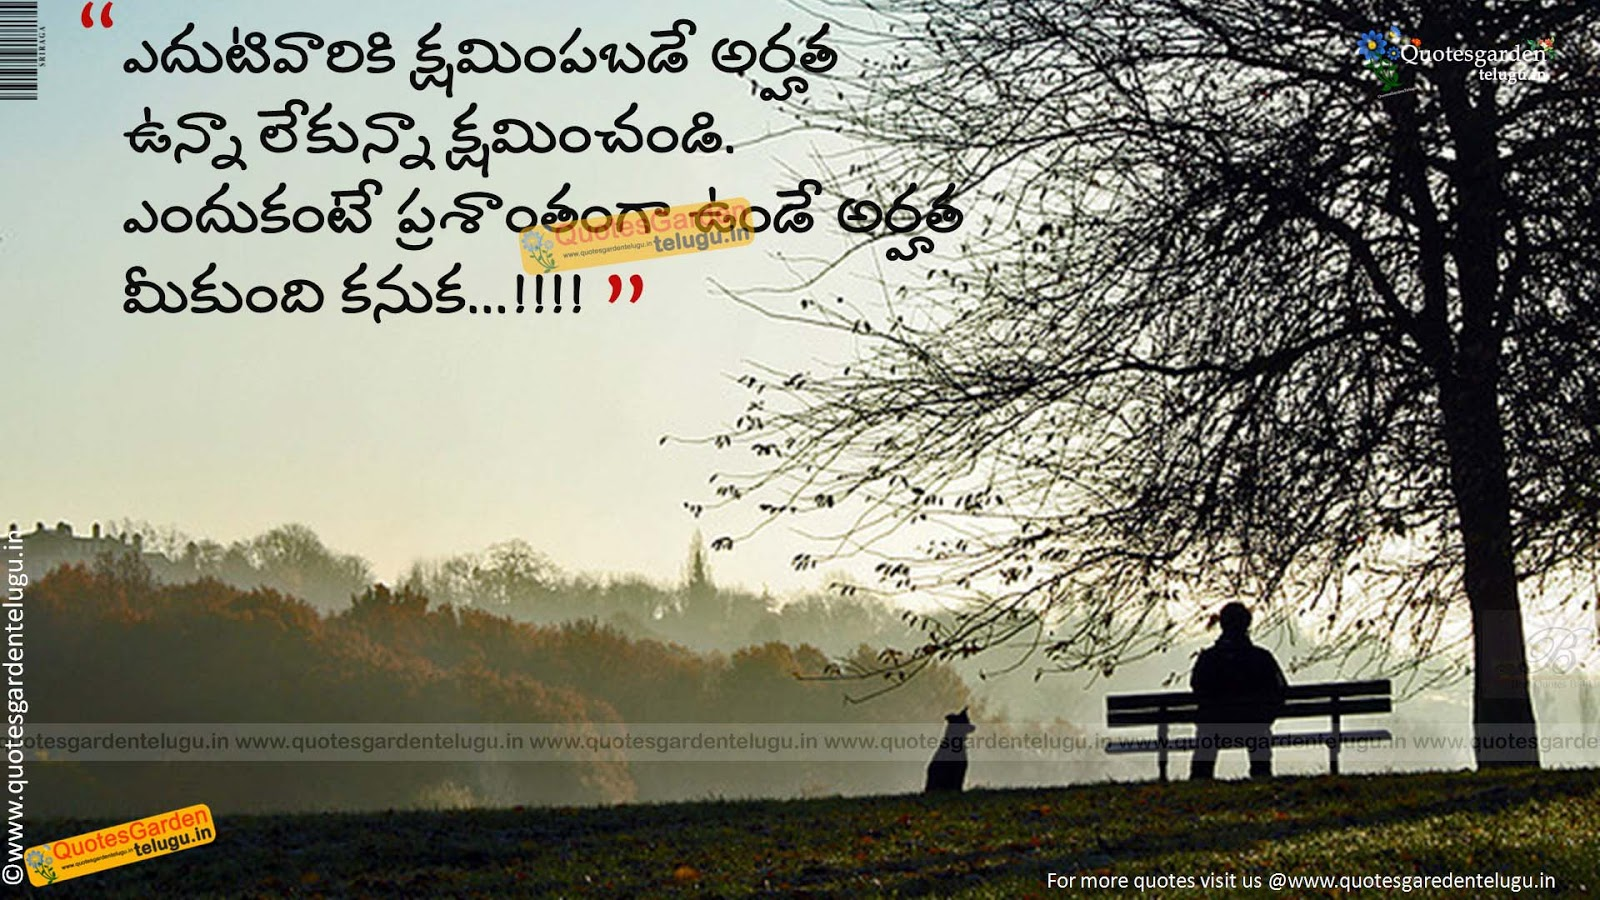 Telugu Quotes Wallpapers Best Inspiring Life Change Quotes In Telugu 1142 Quotes